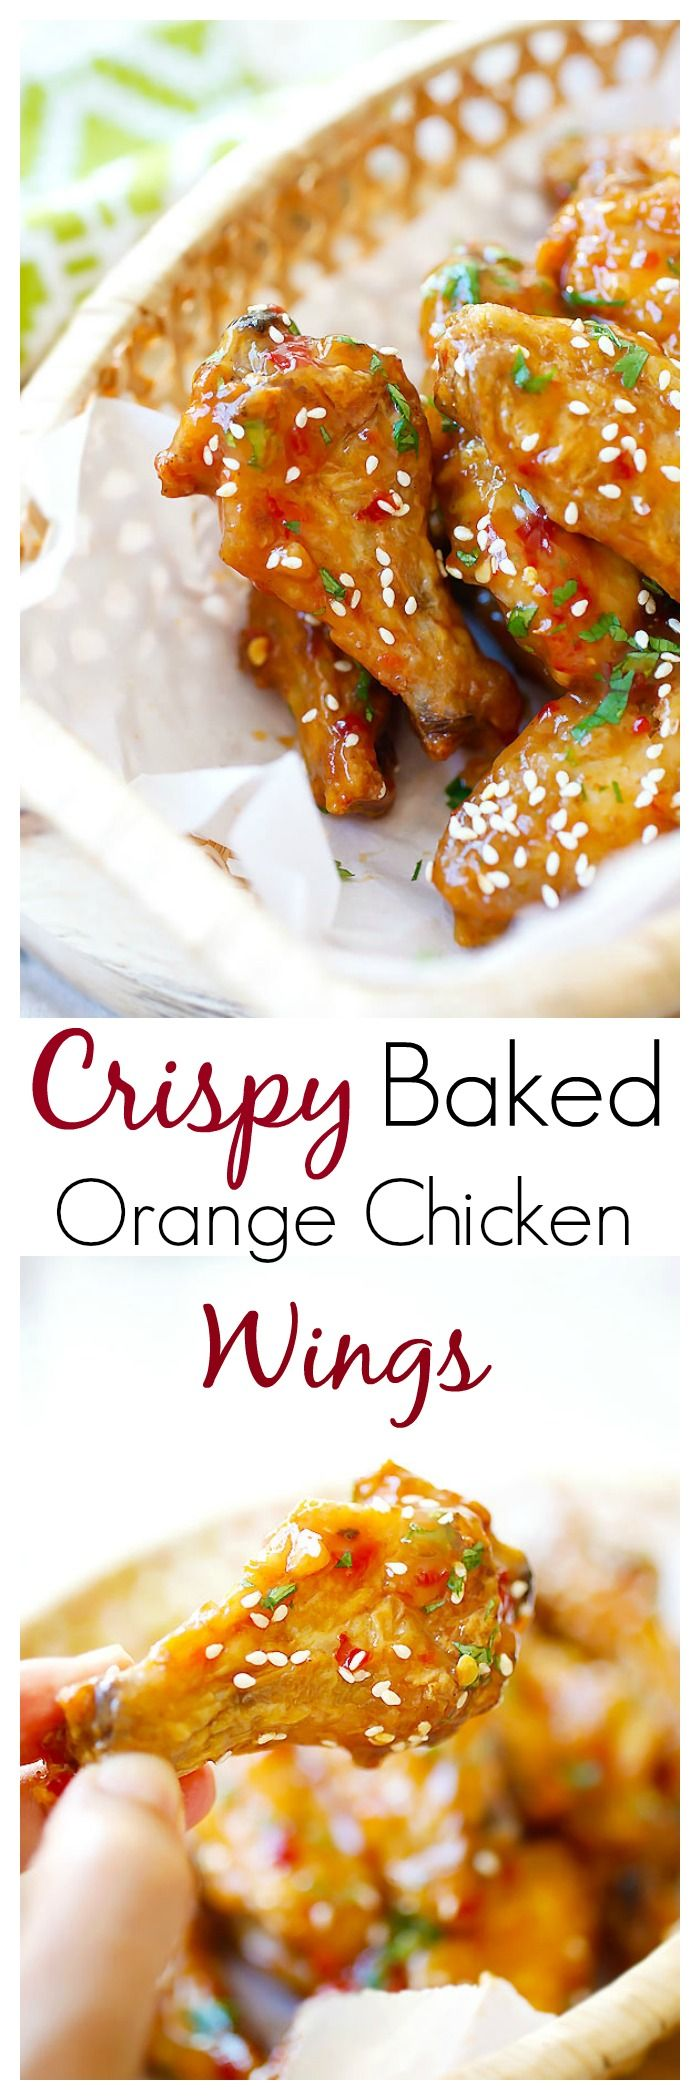 Crispy Baked Orange Chicken Wings - baked in oven and coated with sweet, citrusy and savory Chinese orange sauce. BEST and crispiest chicken wings EVER  | rasamalaysia.com | @justataste